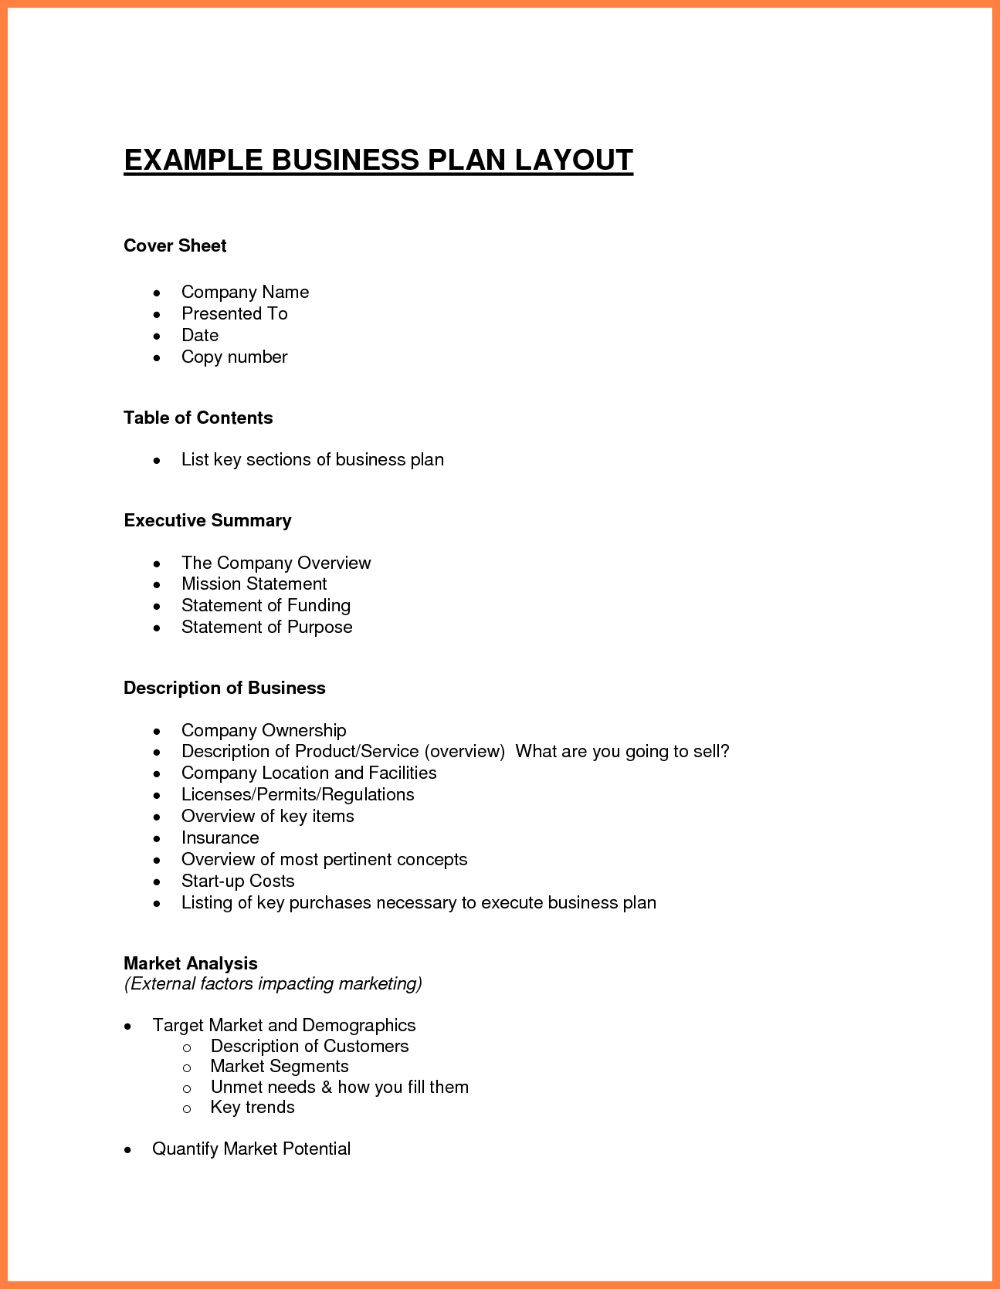 003 Exceptional Simple Busines Plan Template Free Picture  Word Document DownloadFull